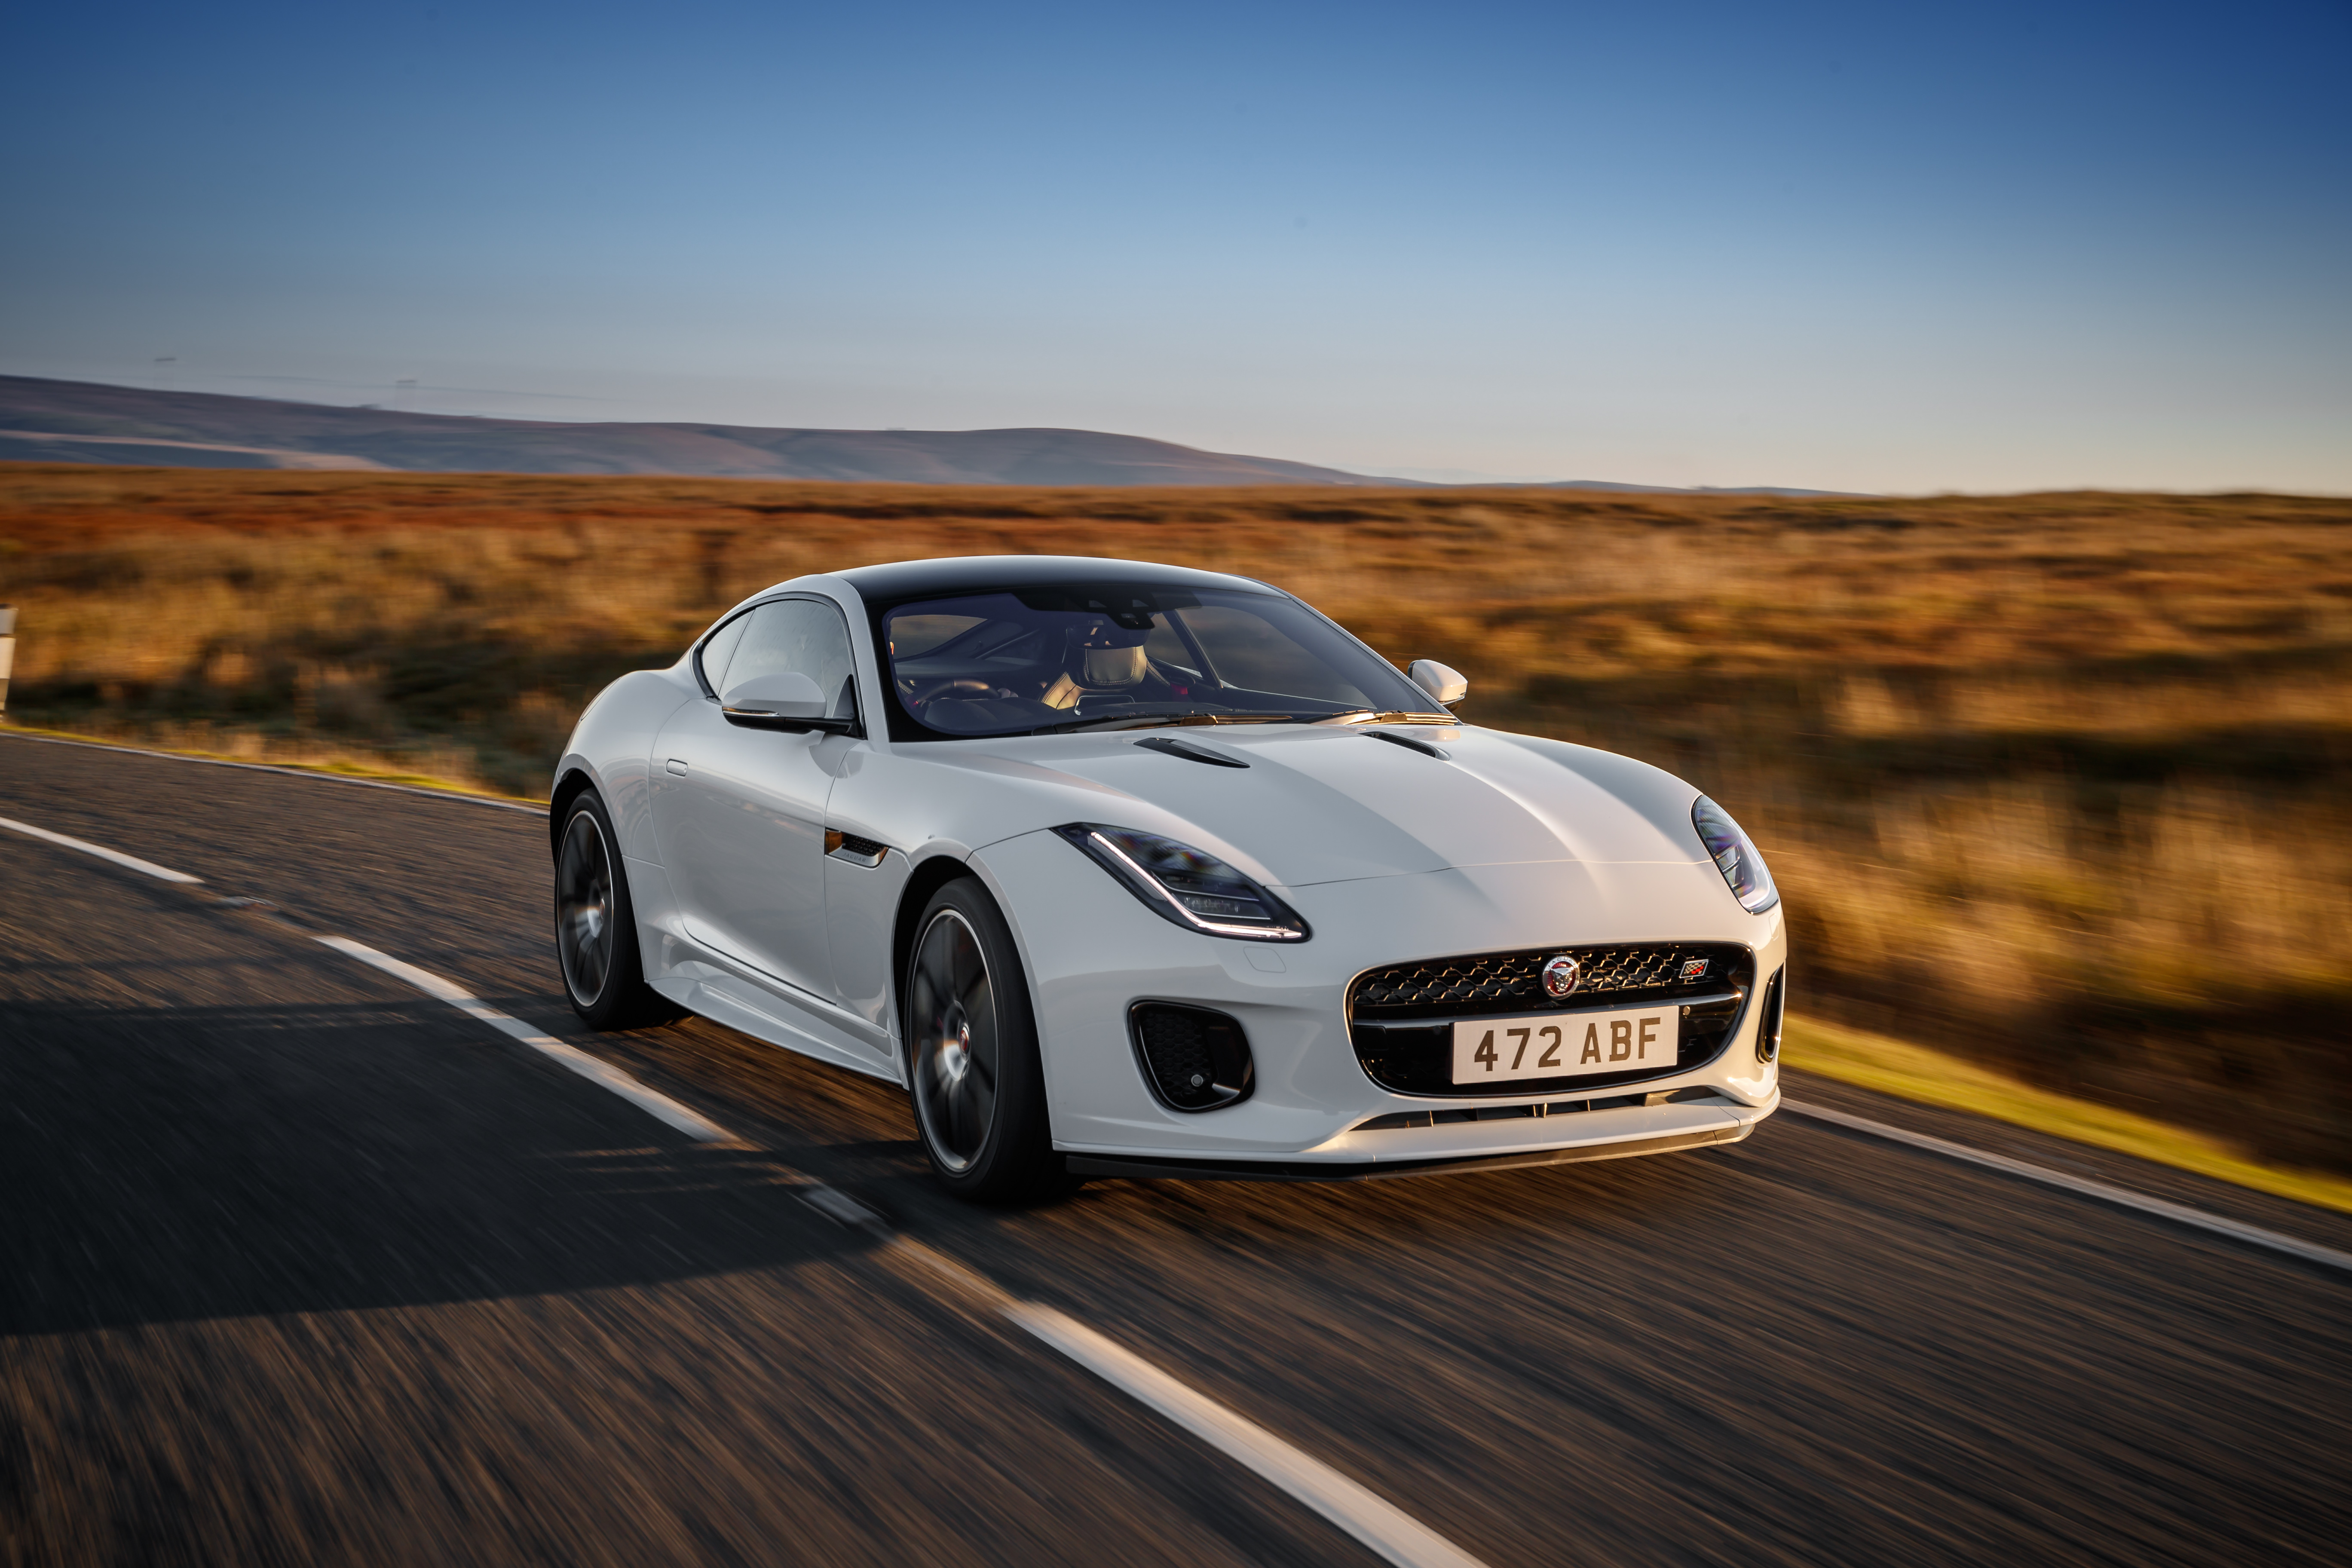 2019 jaguar f-type checkered flag limited edition coupe   top speed